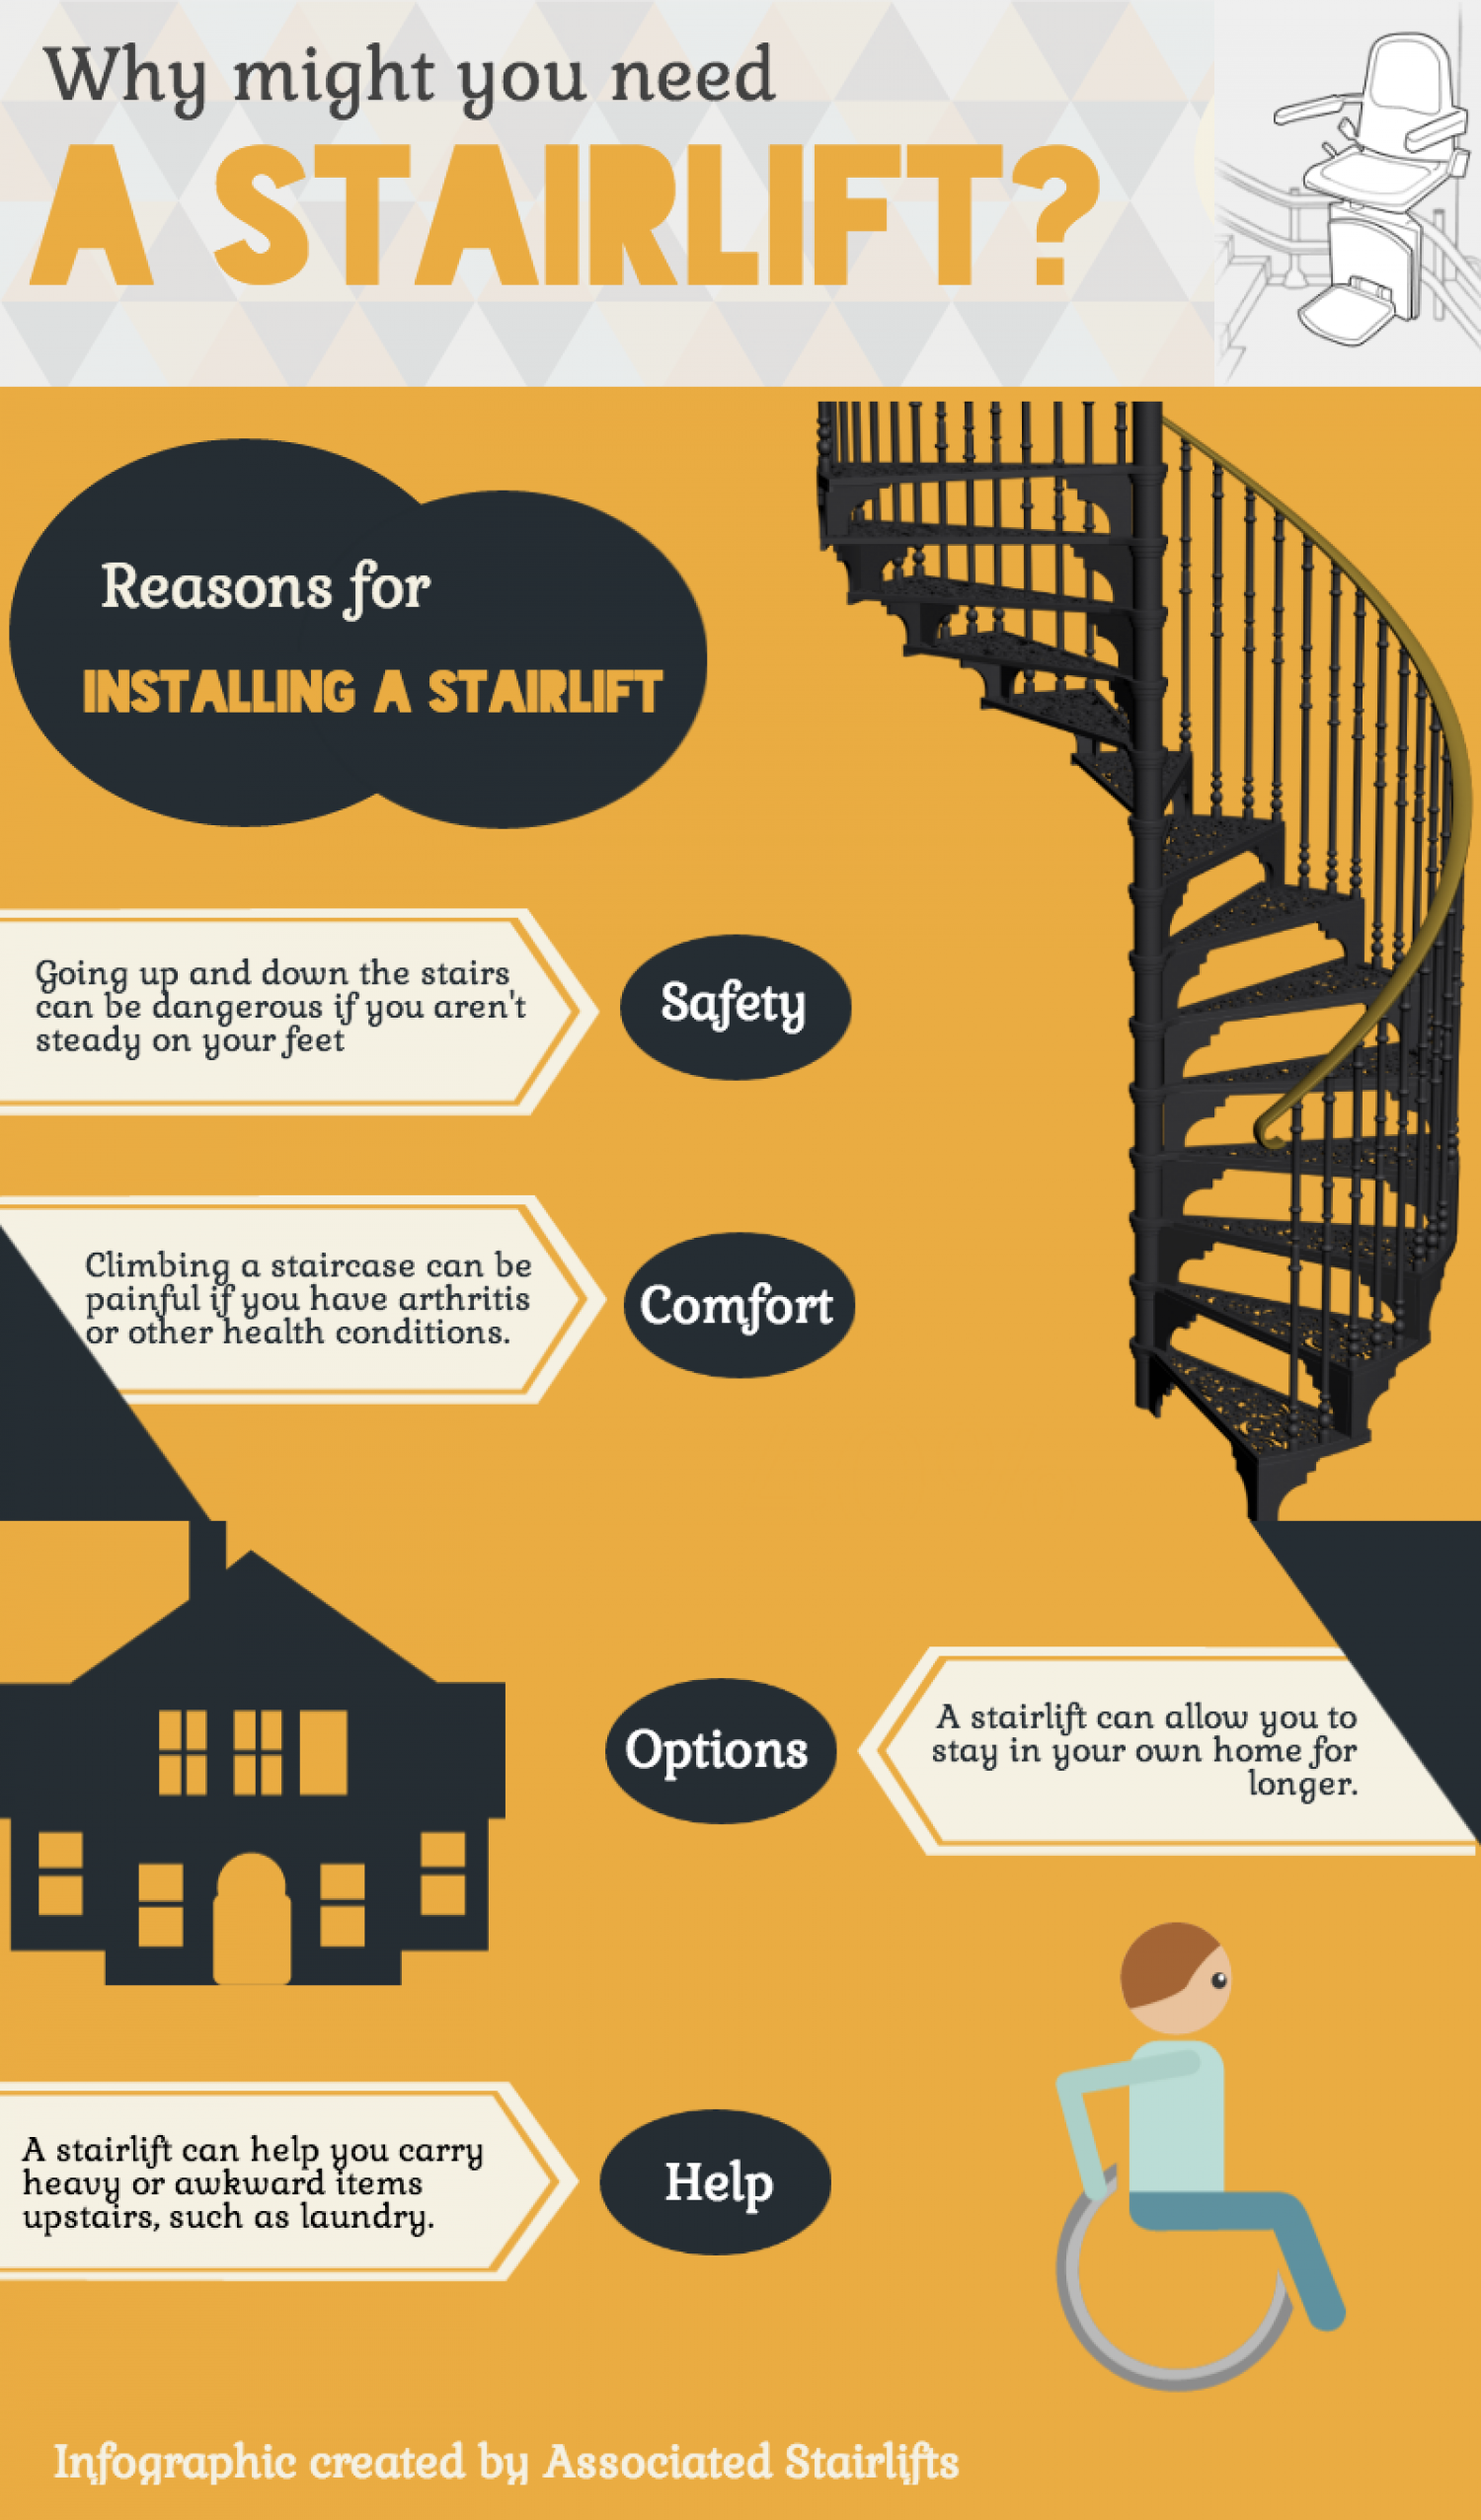 Reasons for installing a stairlift Infographic